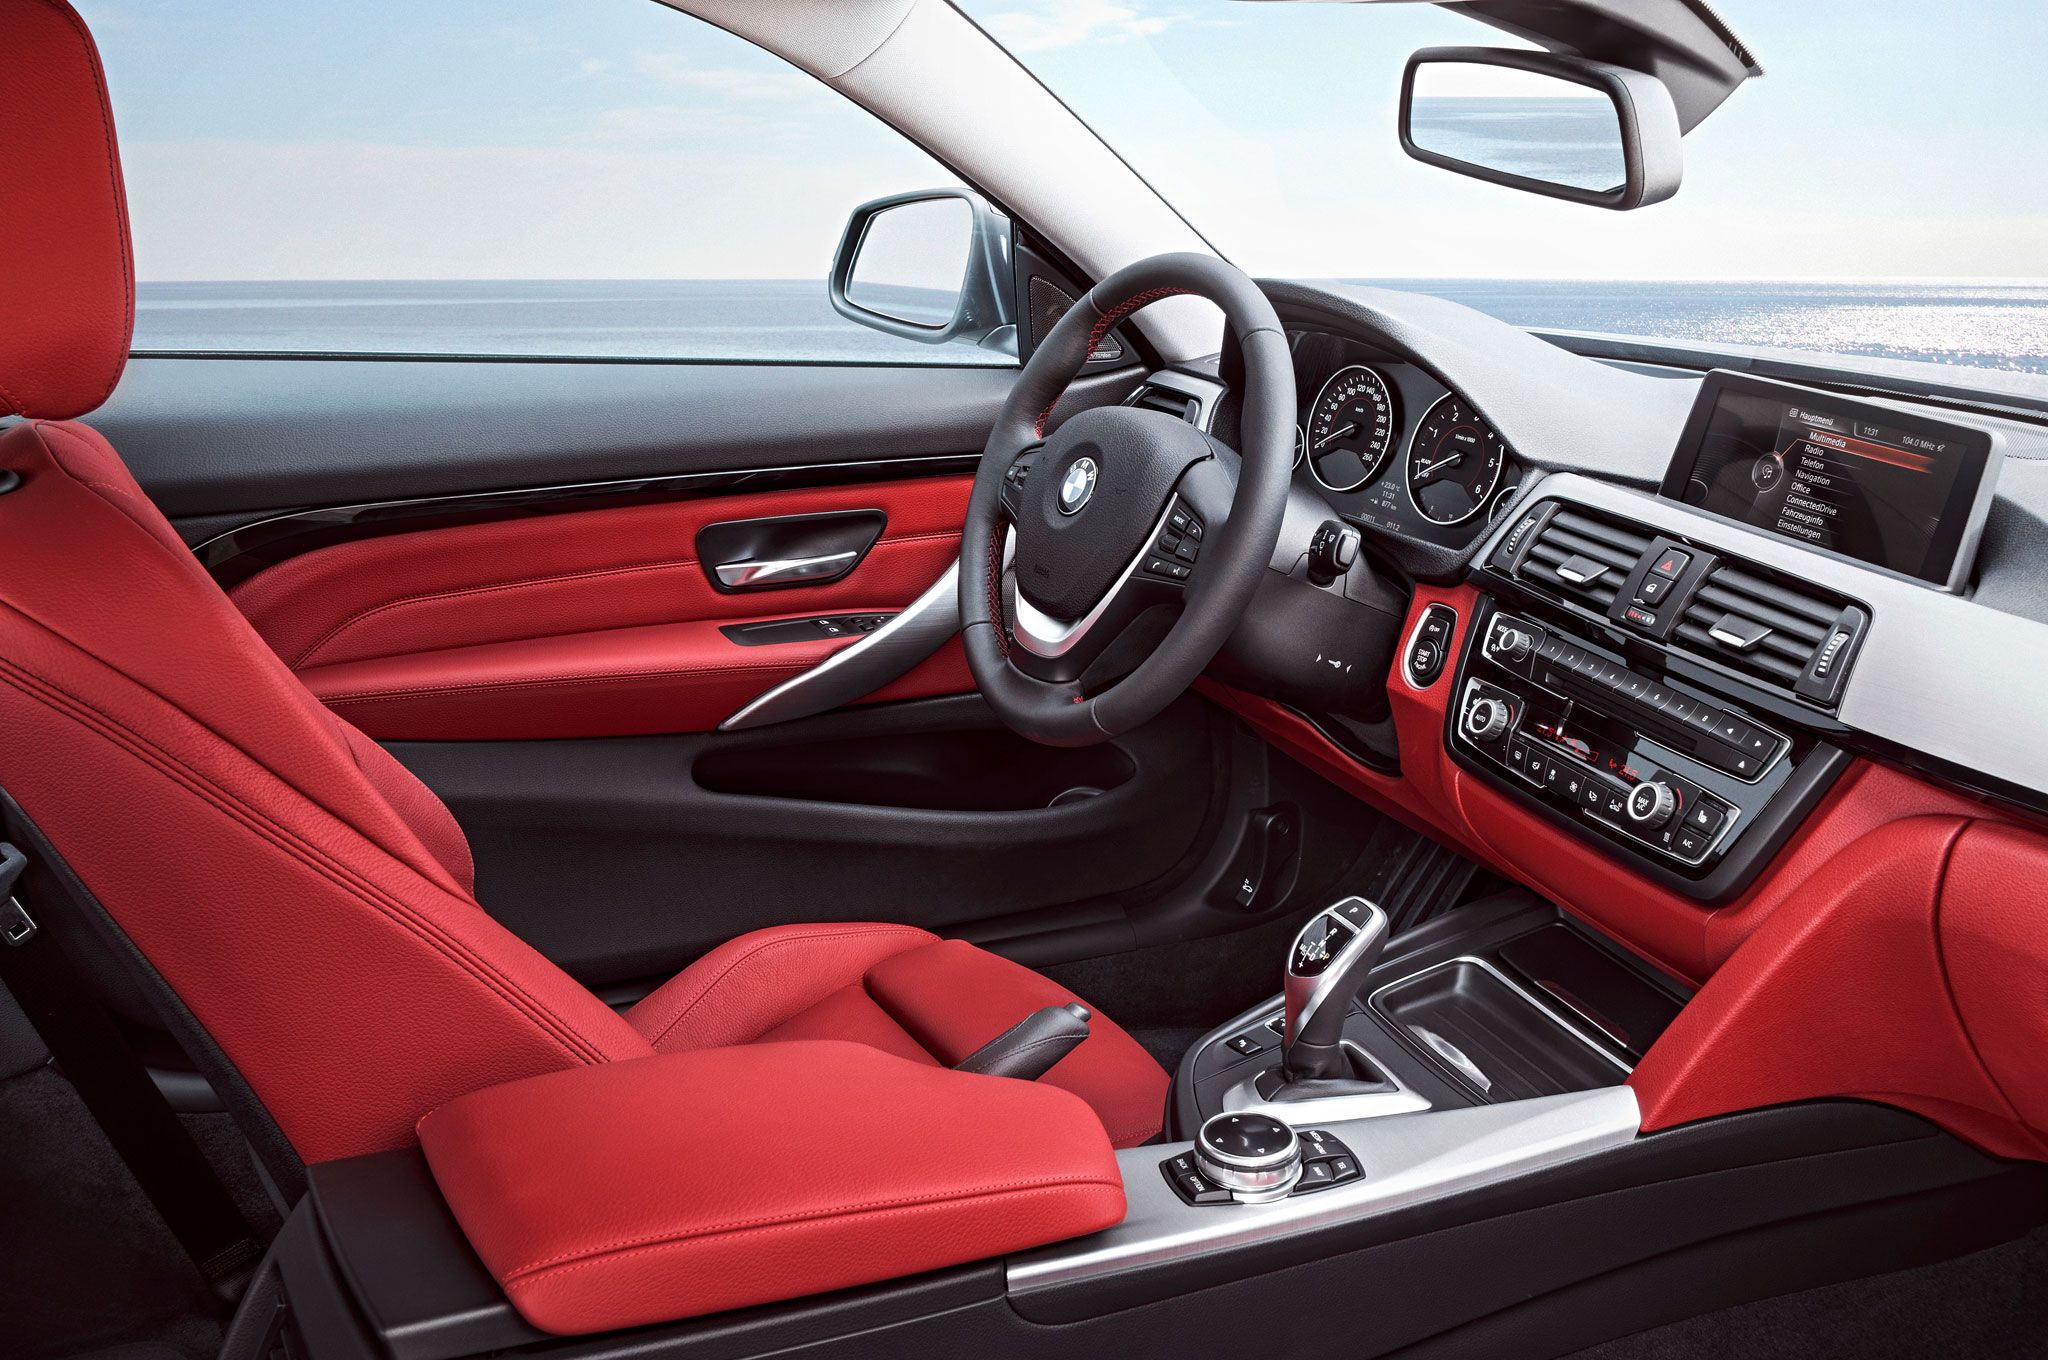 2014 Bmw 4 Series Designsity With Images Bmw 4 Series Bmw 4